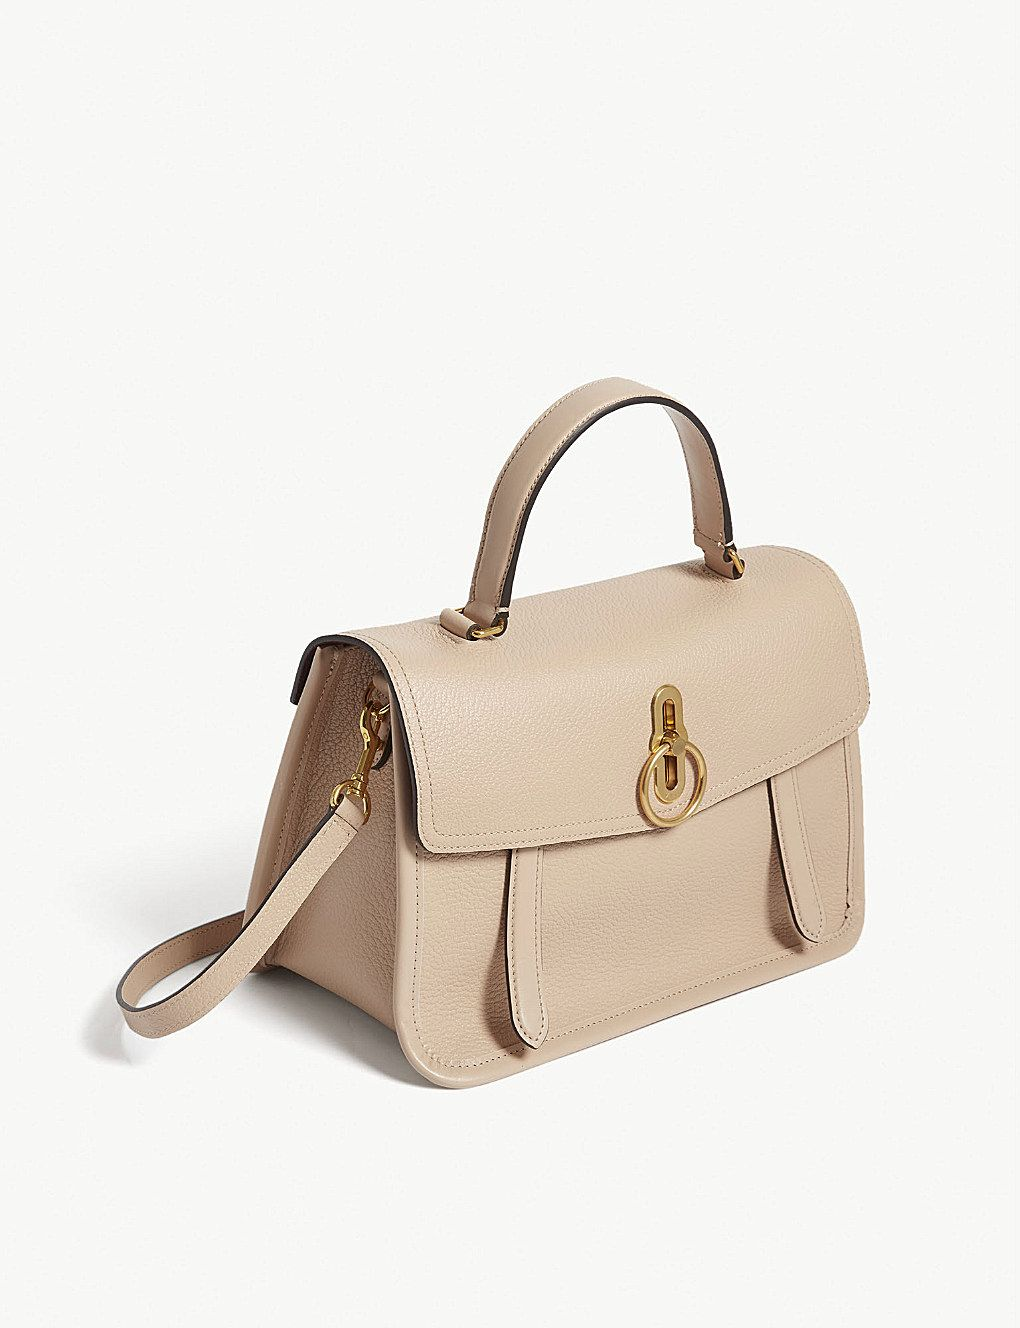 MULBERRY - Gracy grained leather satchel  8da9f4738a883